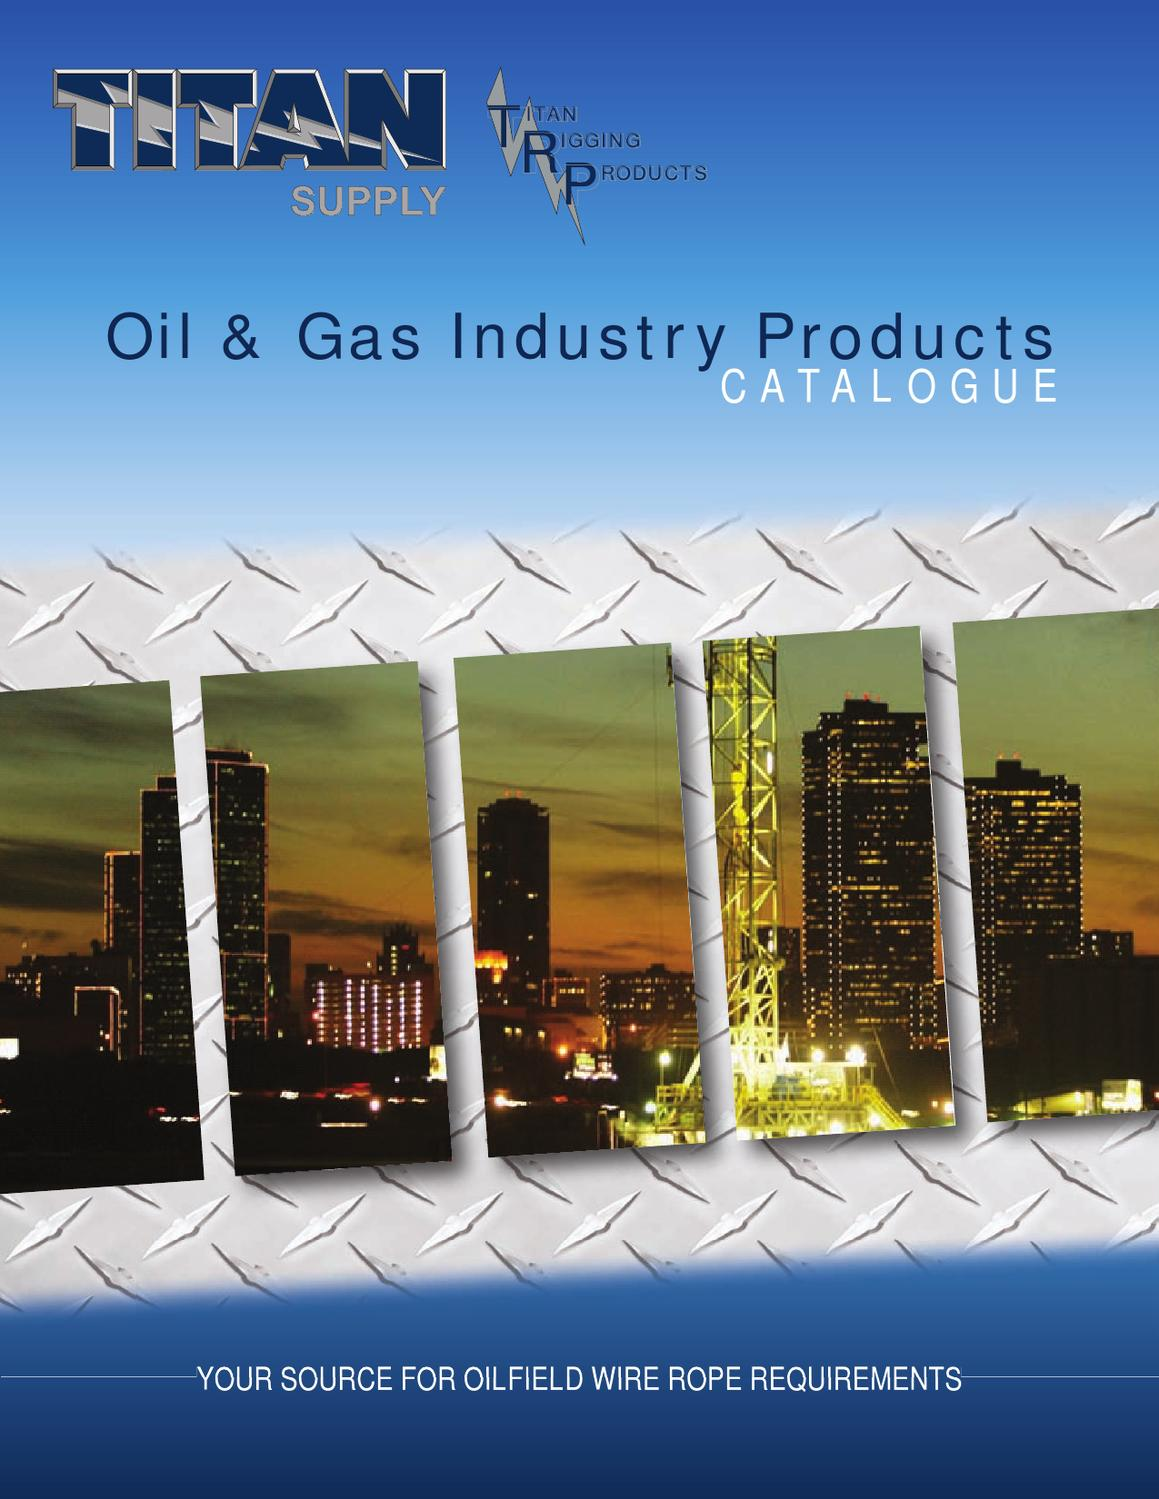 Oil & Gas Industry Products Catalogue by Teresa Brown - issuu